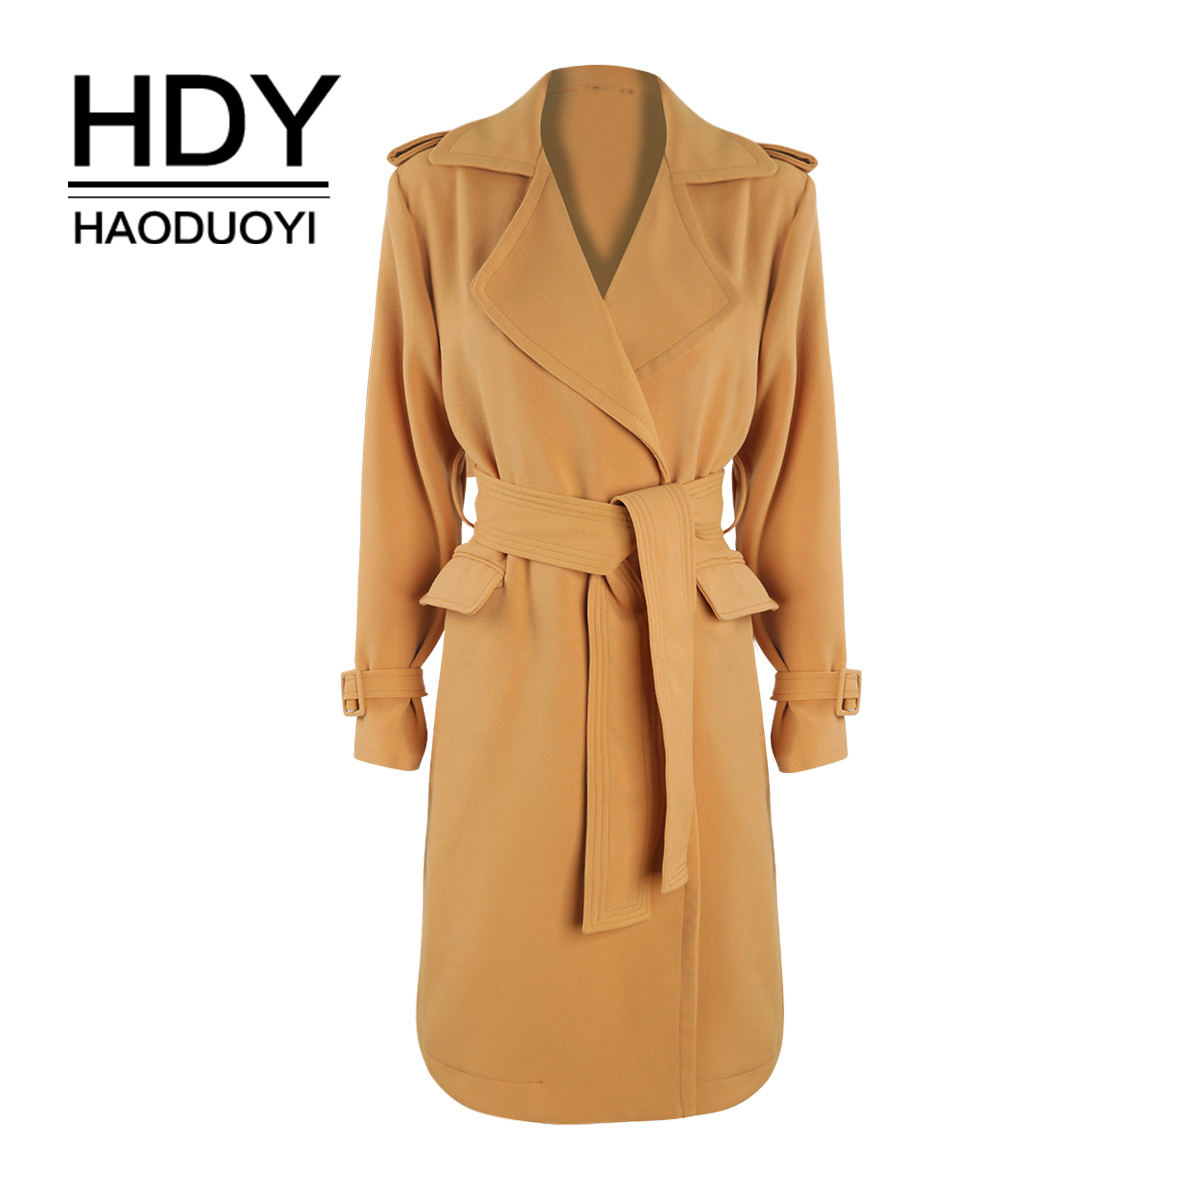 HDY Haoduoyi 2019 Ginger Epaulettes Waist Knot Hem Open Safari   Trench   Coat For Female Natural Leisure Style Winter Autumn